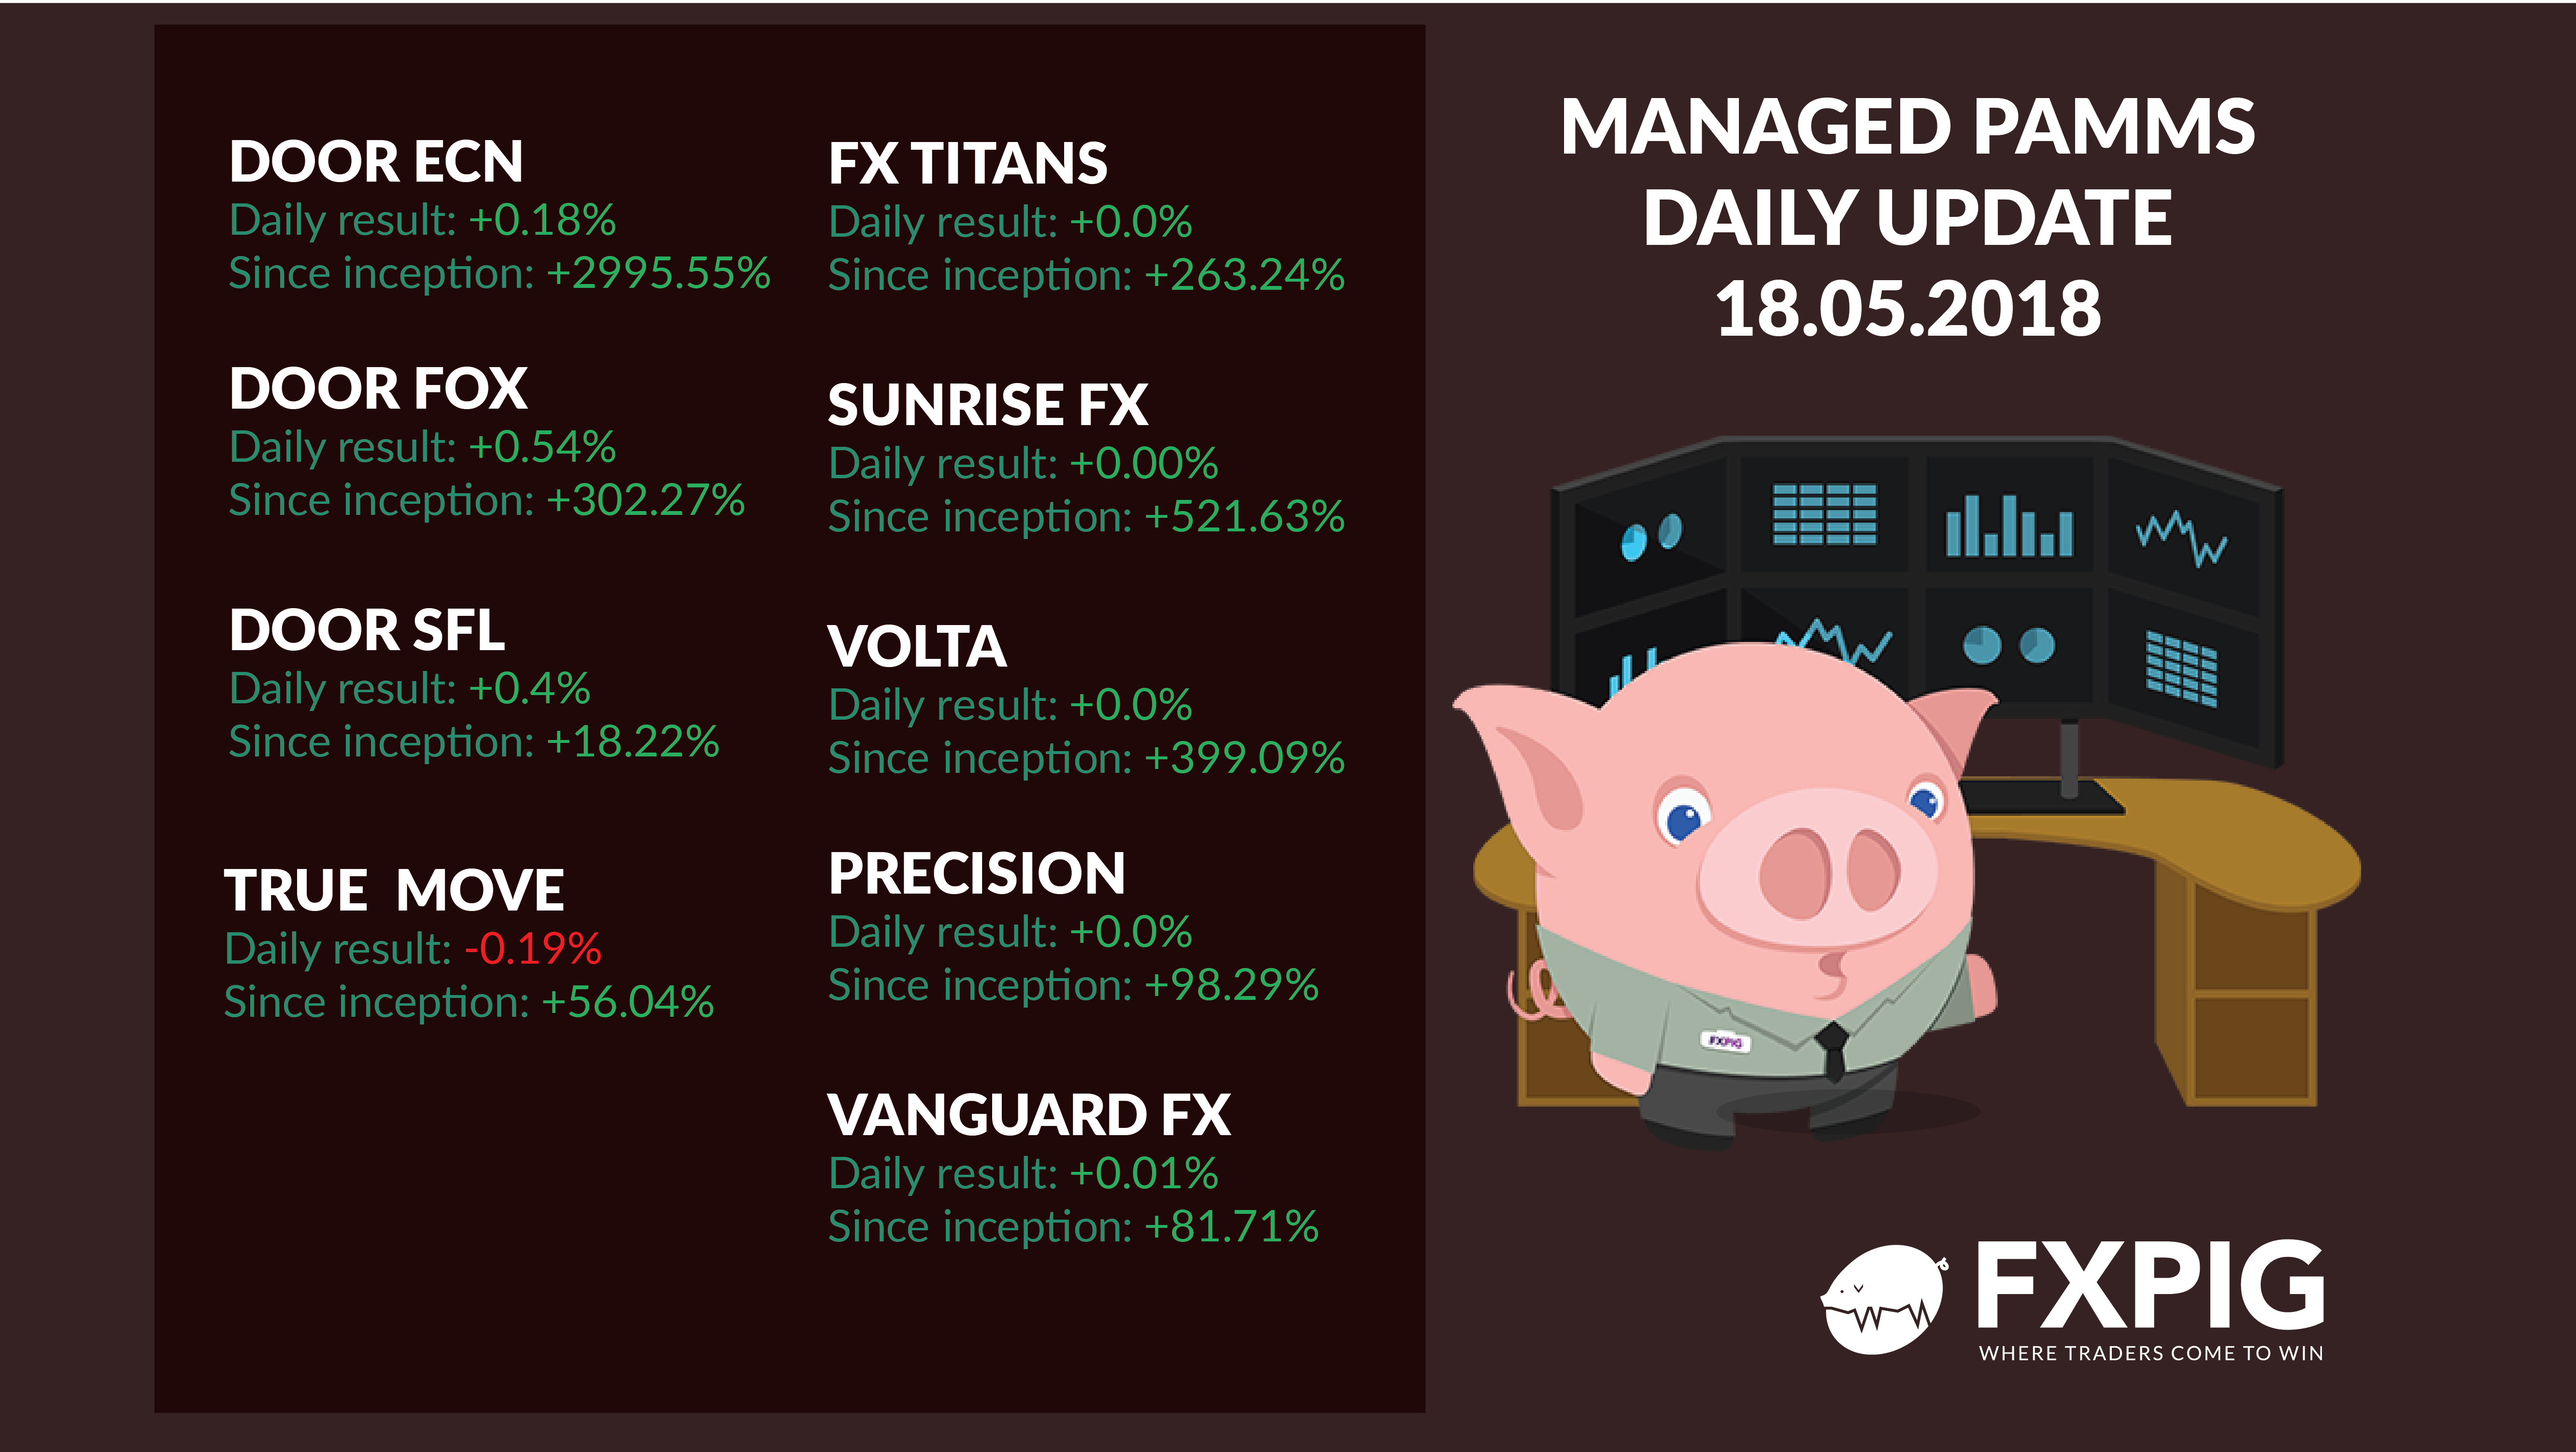 FOREX_Daily-managed-accounts1805_FXPIG